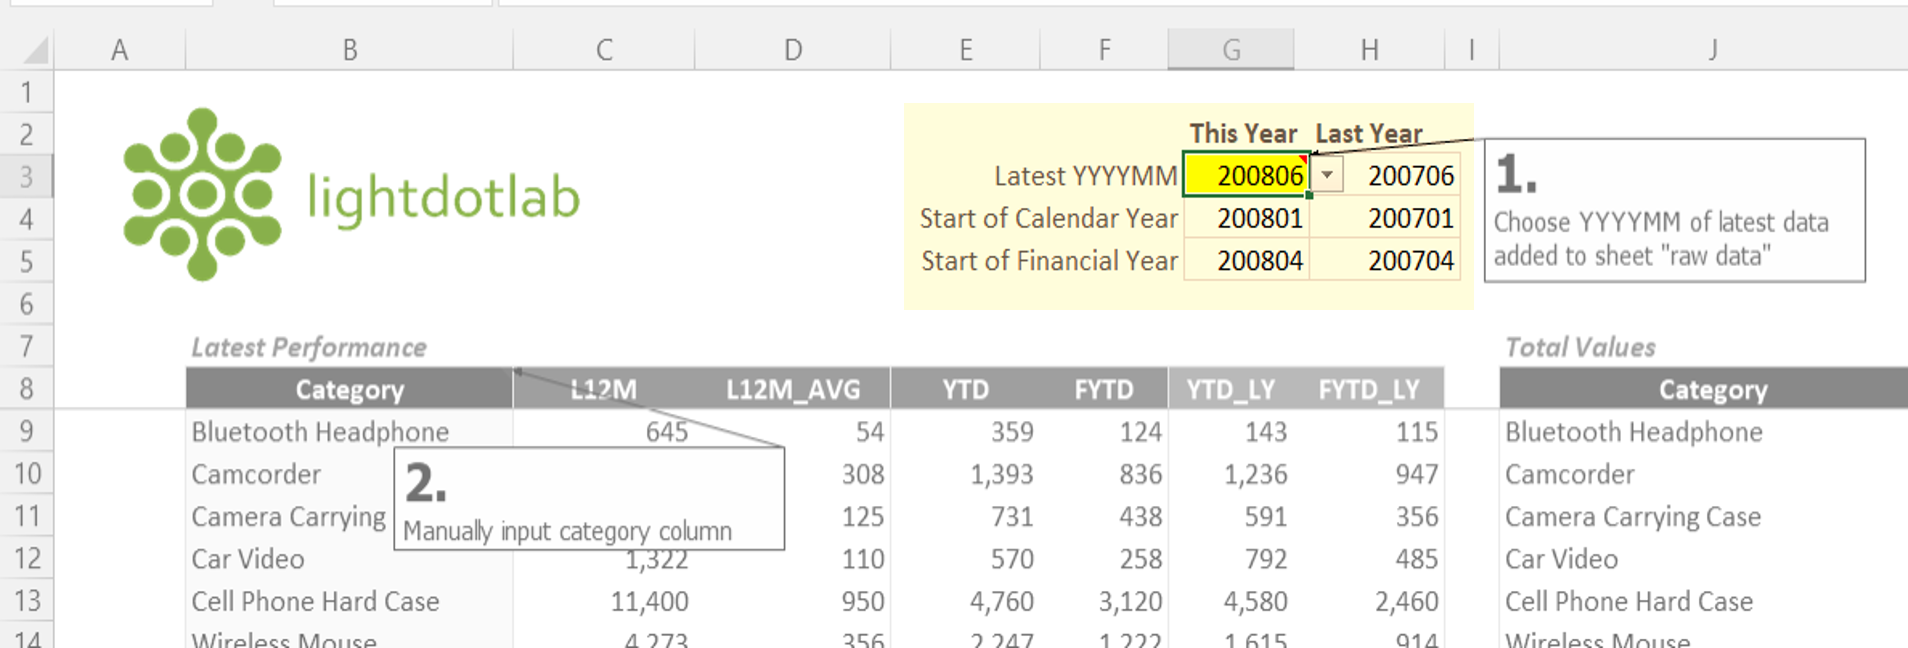 Excel set latest YYYYMM as reference point